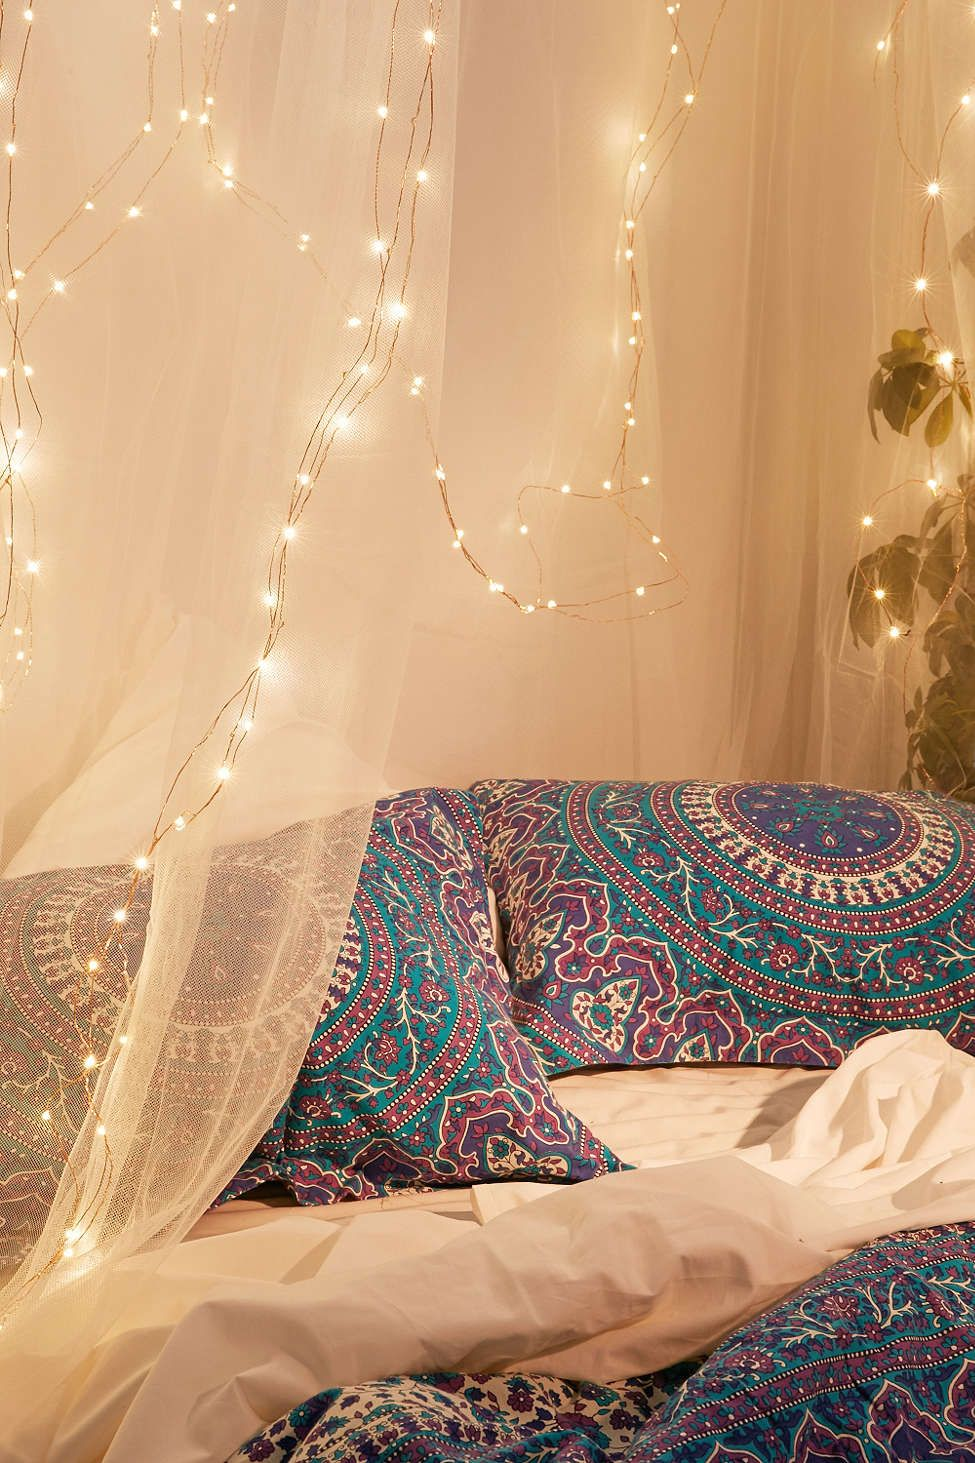 Dorm Room Decorating Ideas BY STYLE | Dorm, Dorm room and Room